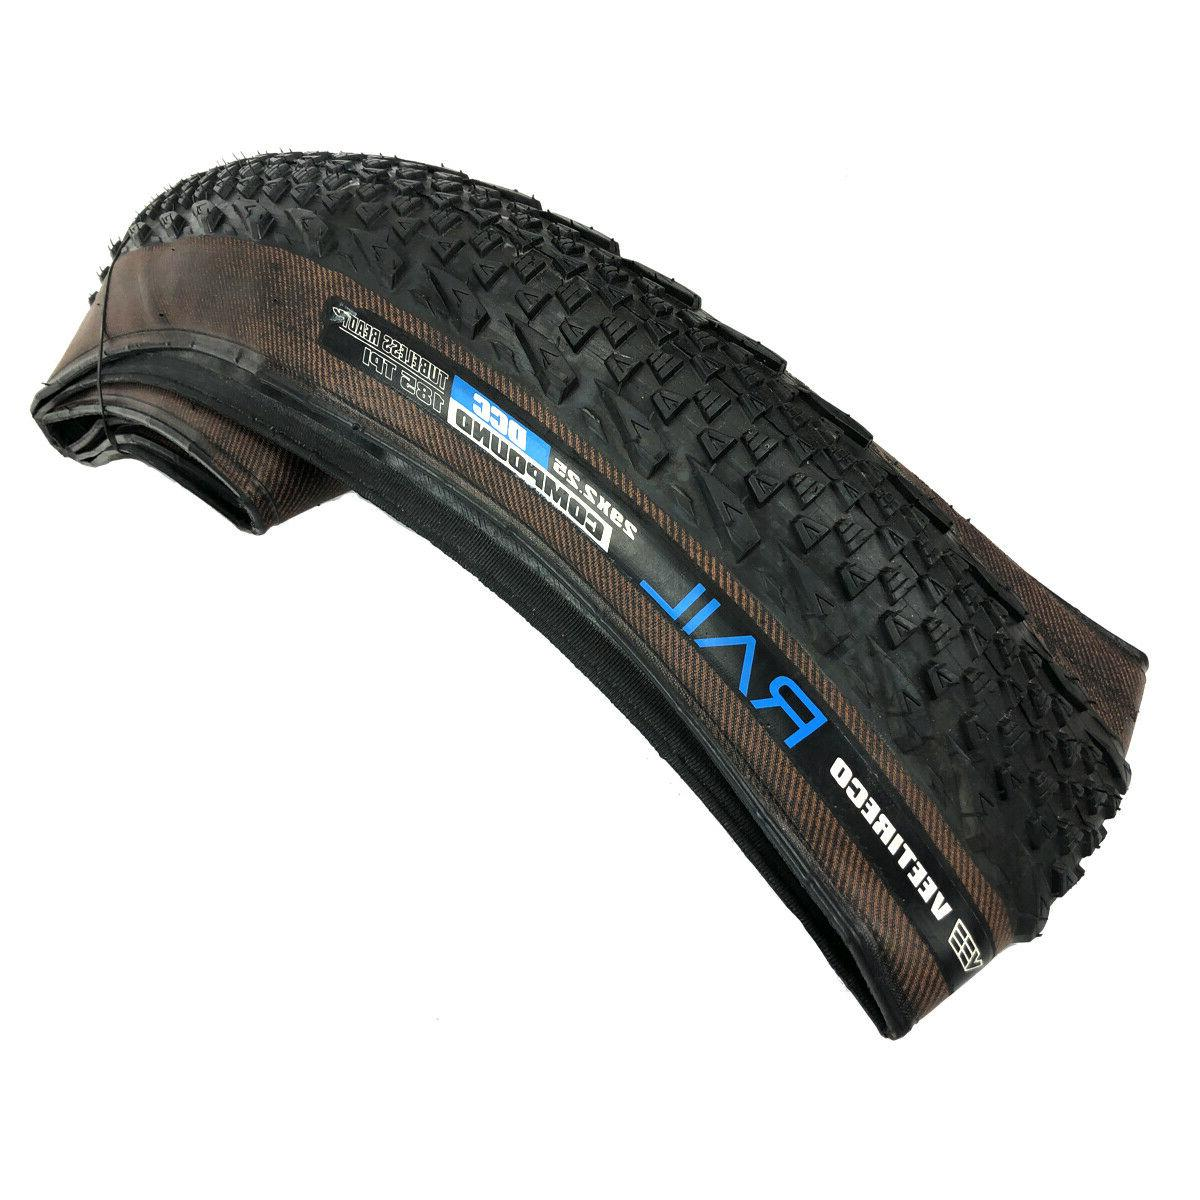 2 Vee Tire 29x2.25 Bike Tires Folding Bead Dual Compound Synthesis